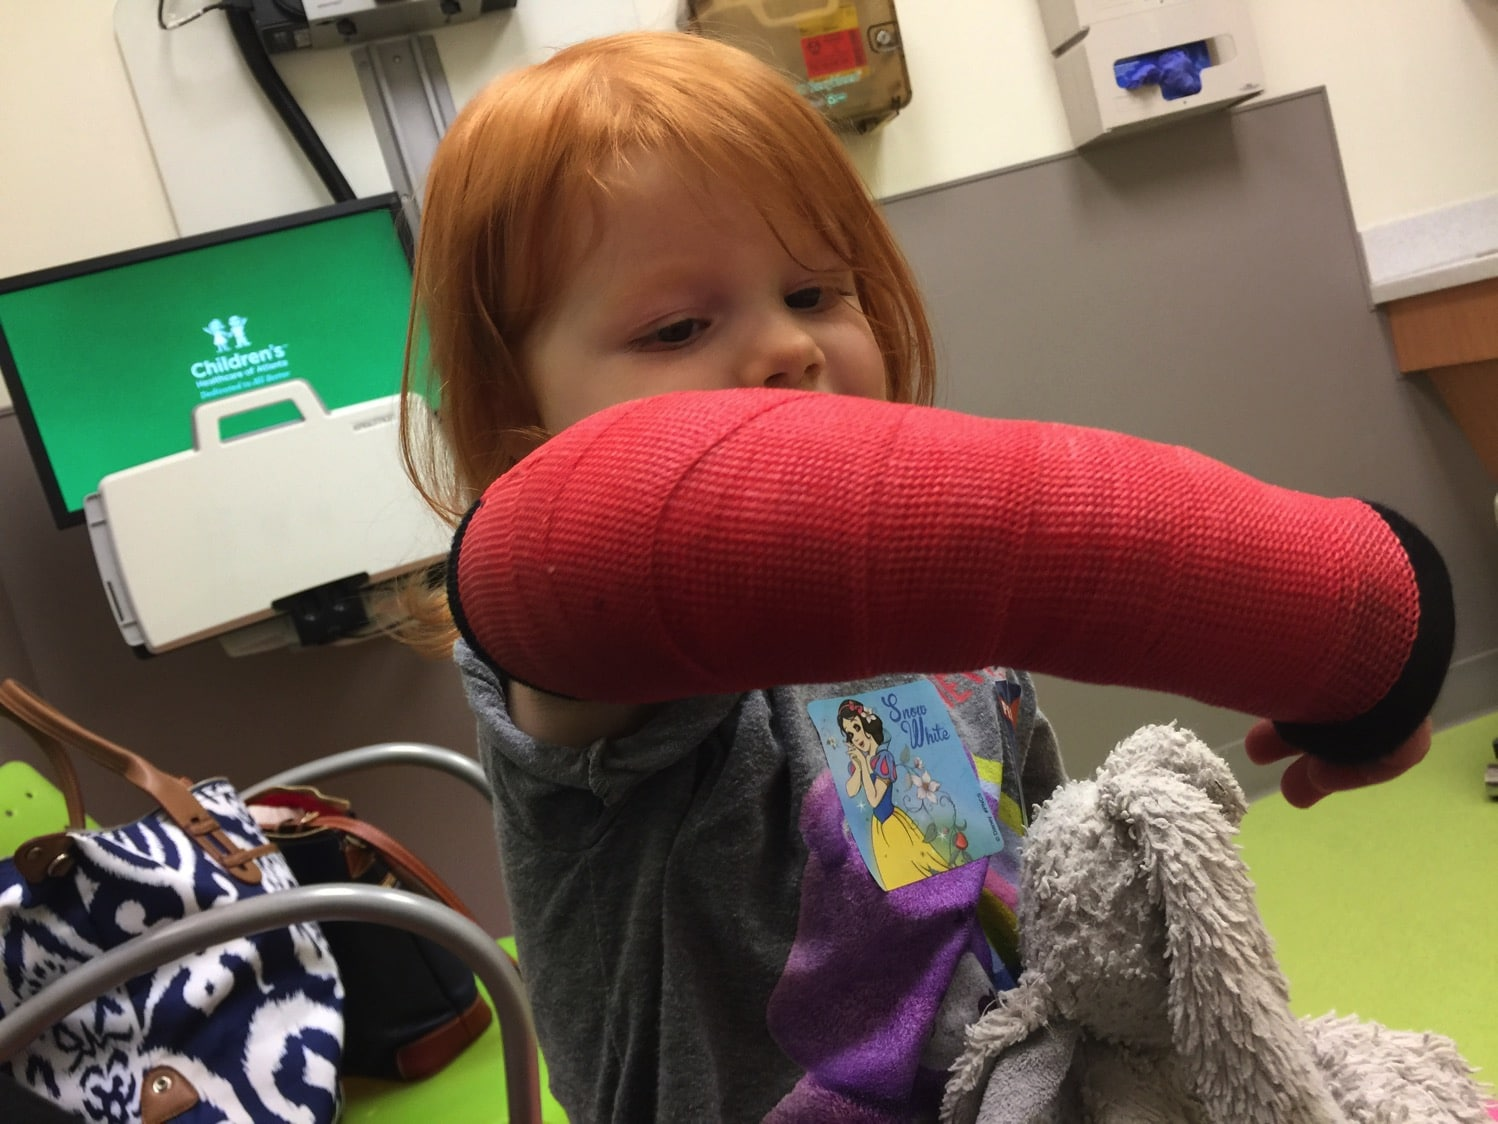 and now her cast